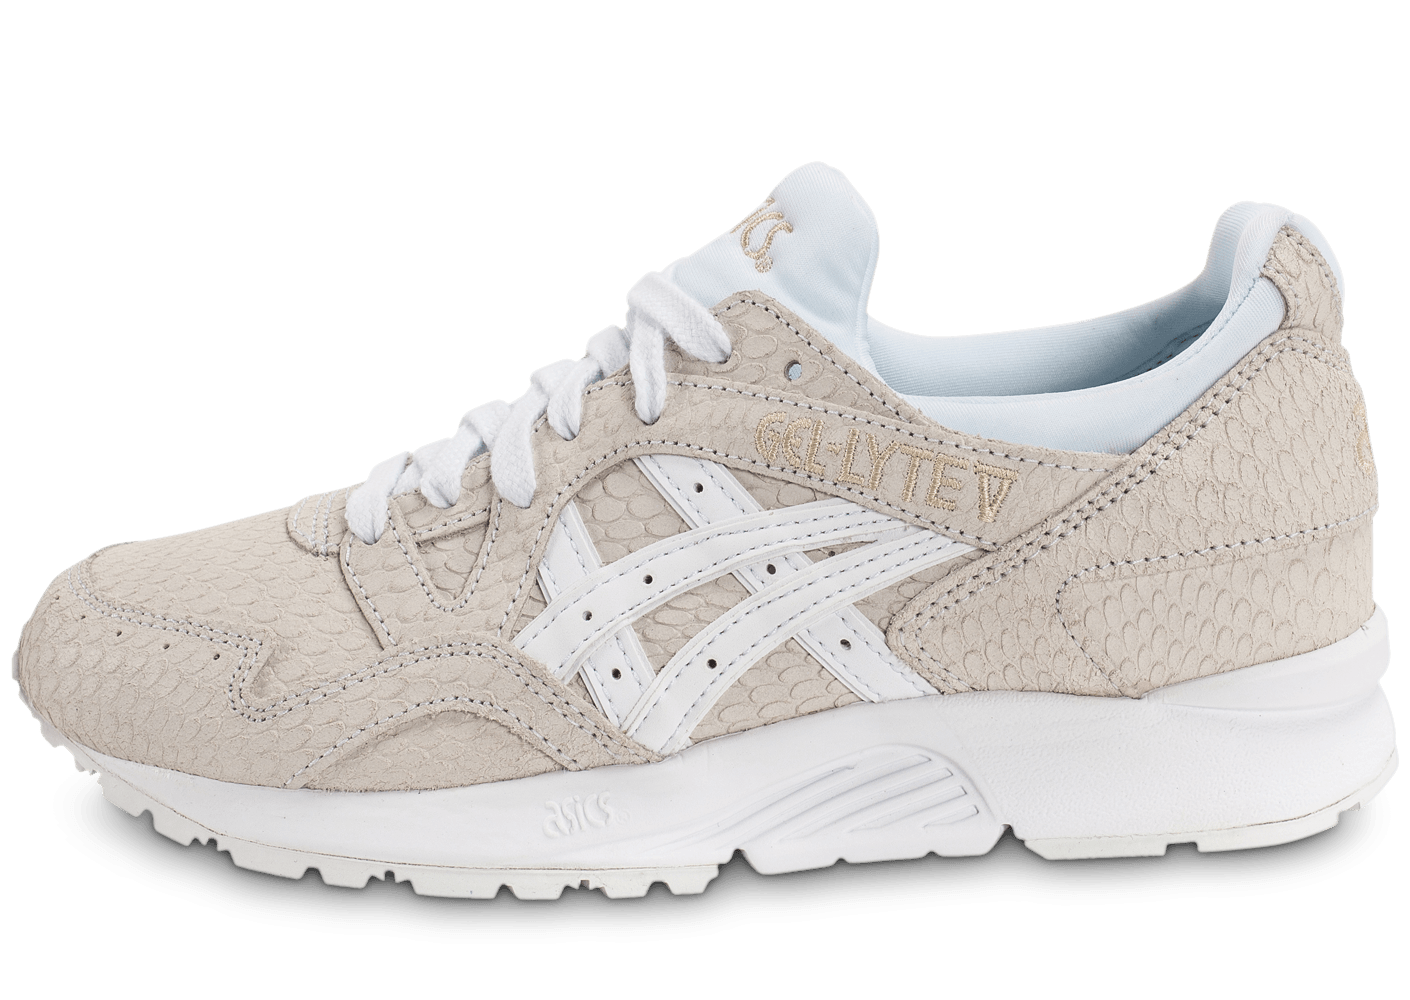 asics gel lyte v w blanche chaussures femme chausport. Black Bedroom Furniture Sets. Home Design Ideas